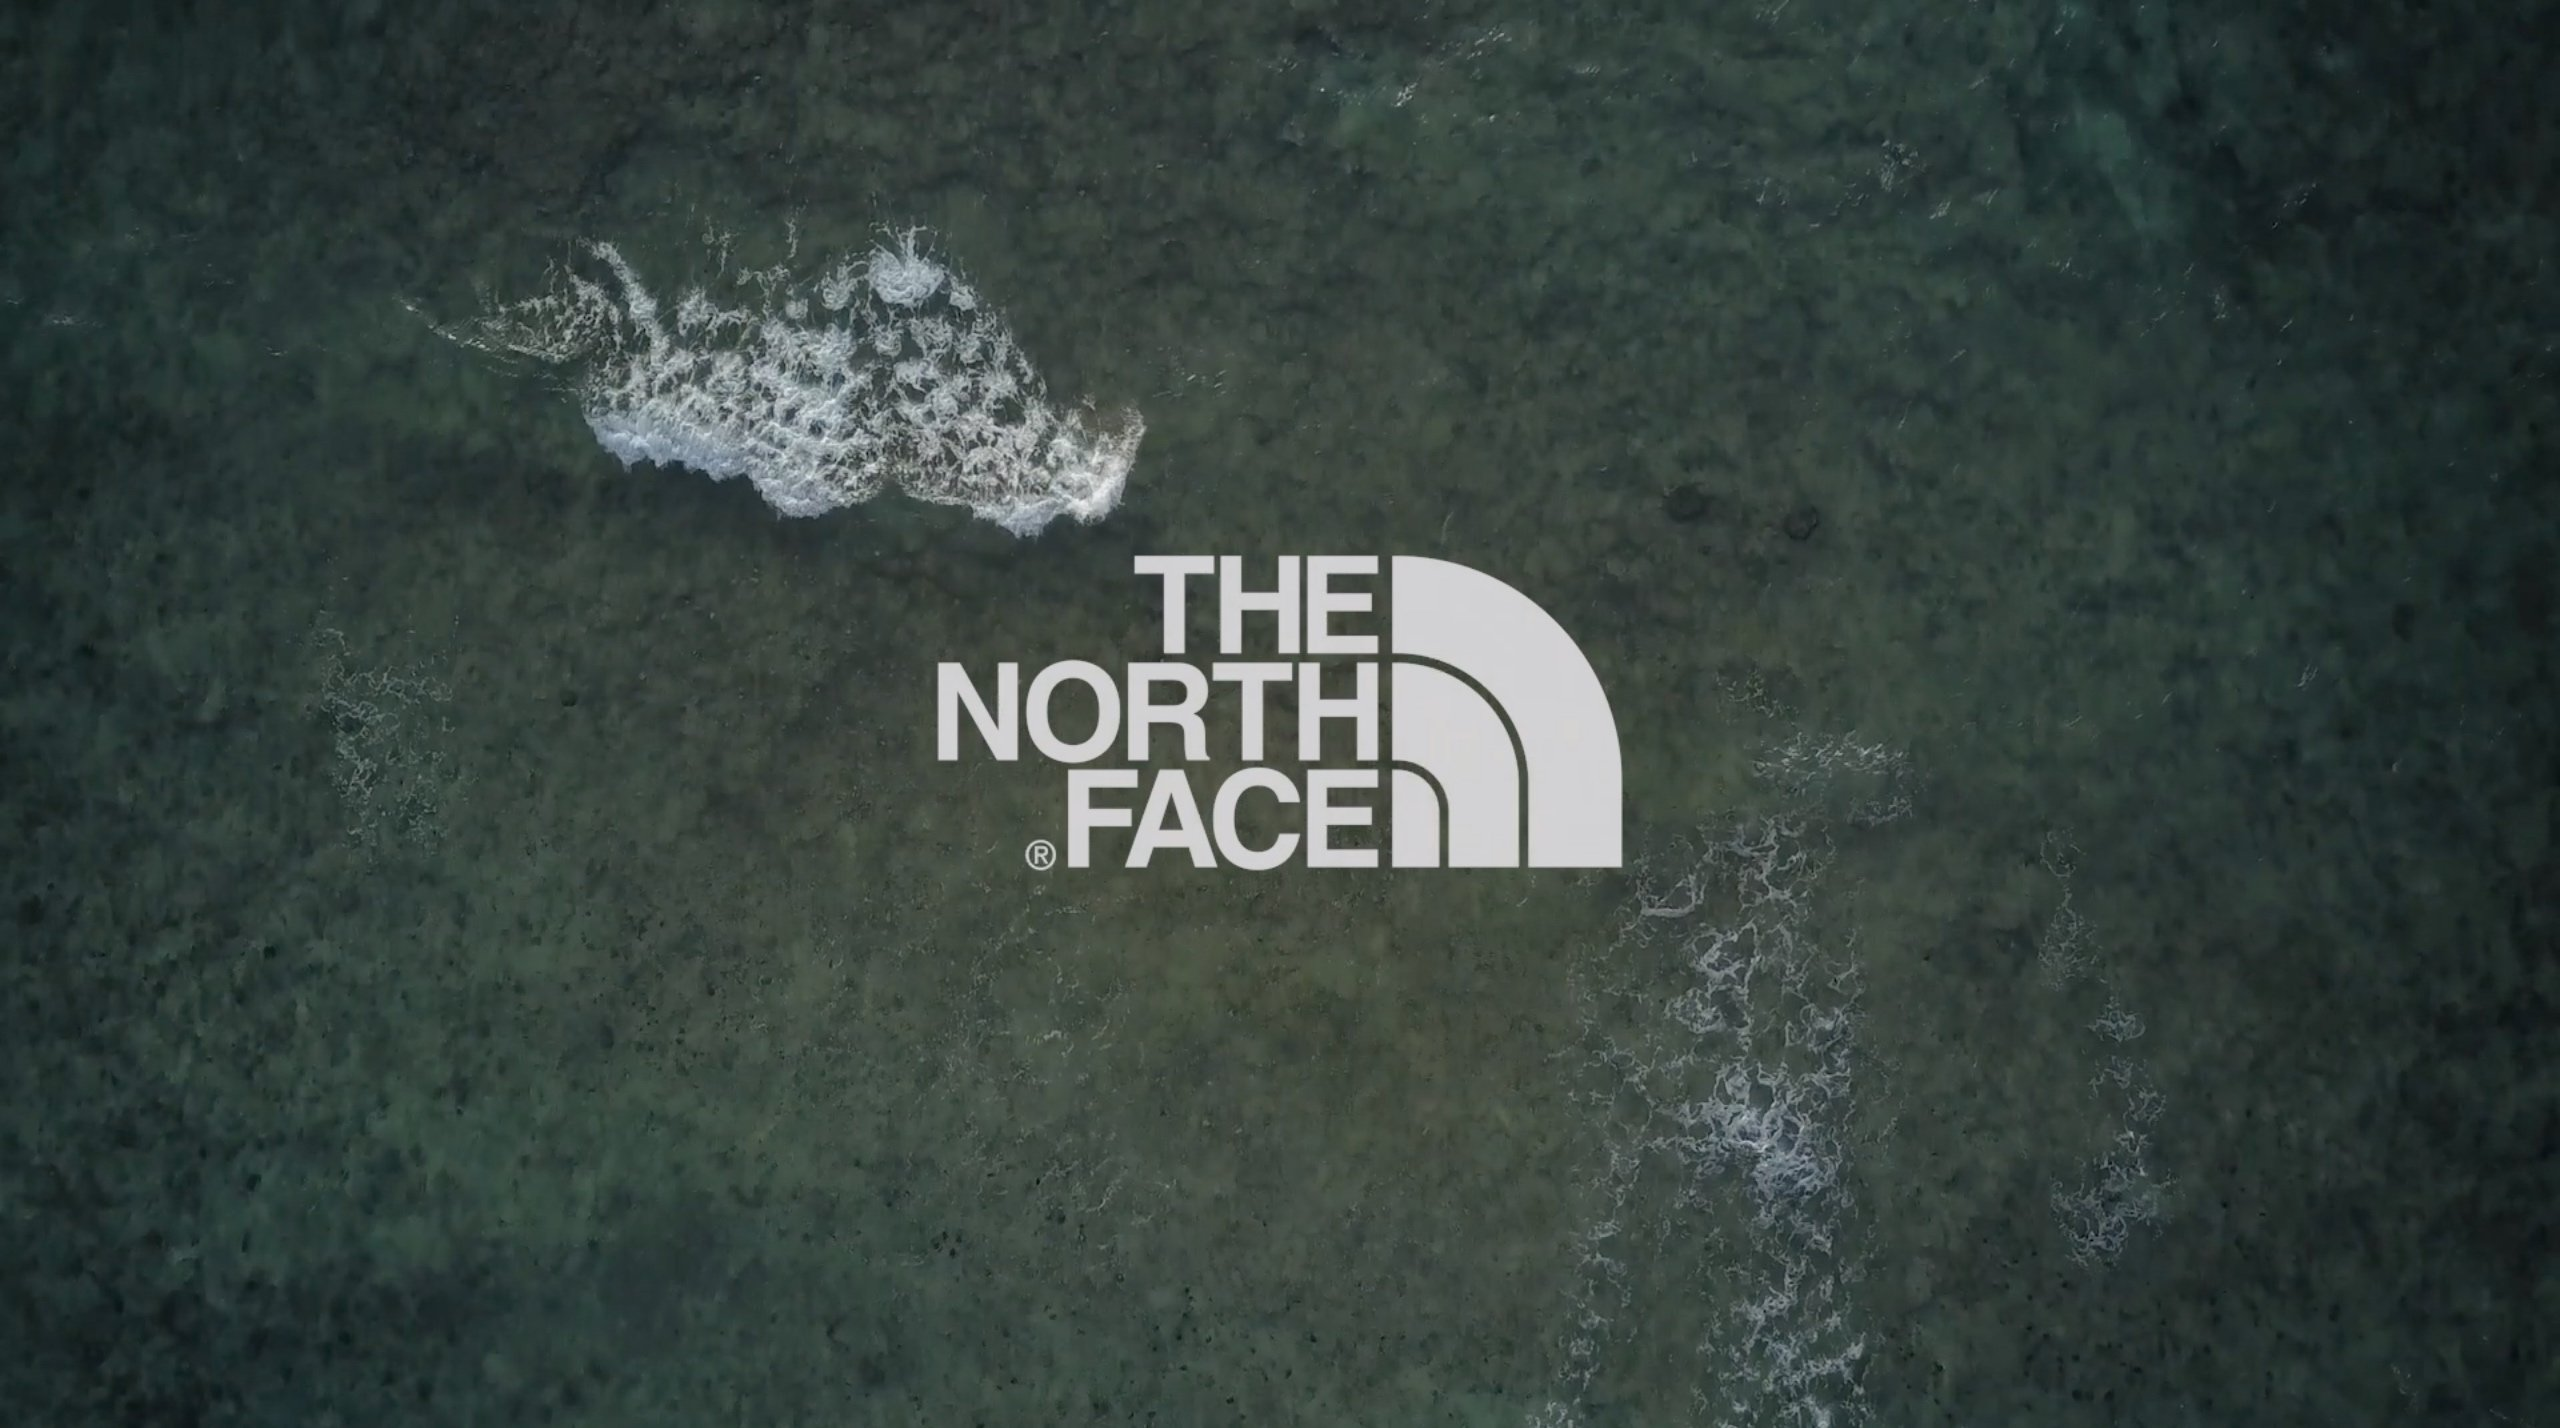 THE NORTH FACE - Behind The Scene '' Longevity Okinawa Project '' by José Jeuland photographer video